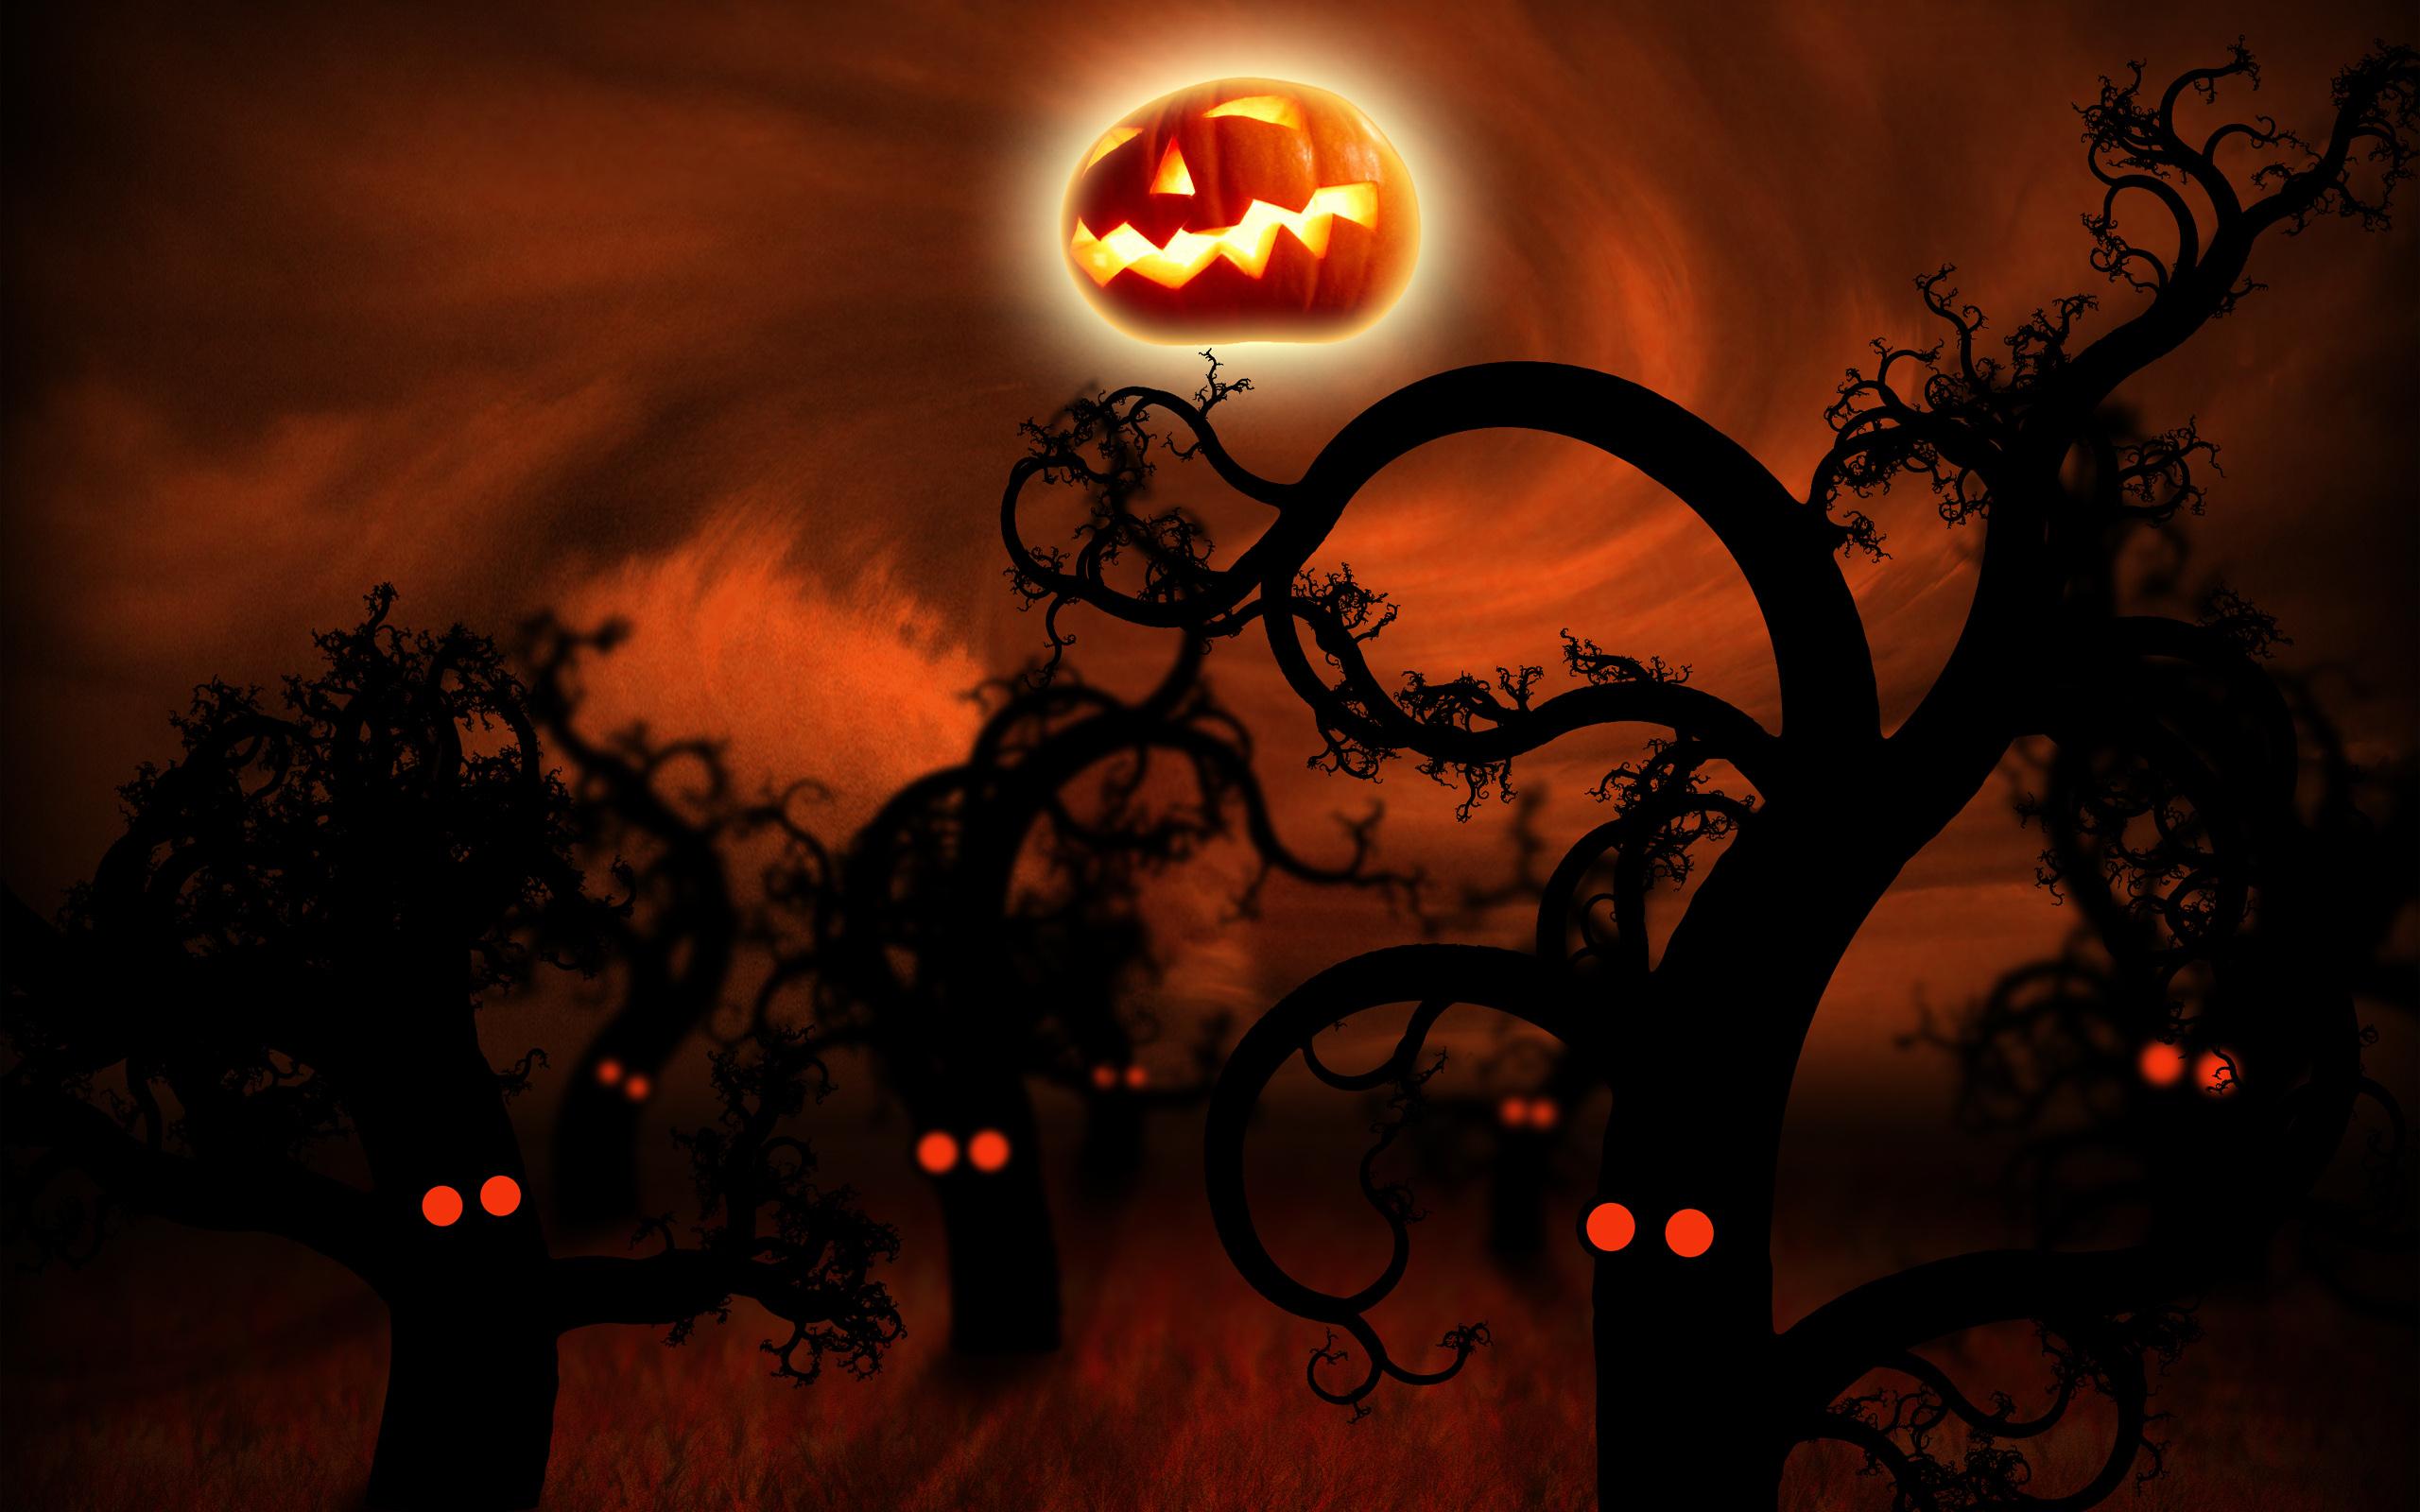 Good Wallpaper Halloween Smartphone - Halloween-HD-Wallpapers-2014  Pictures_42736.jpg